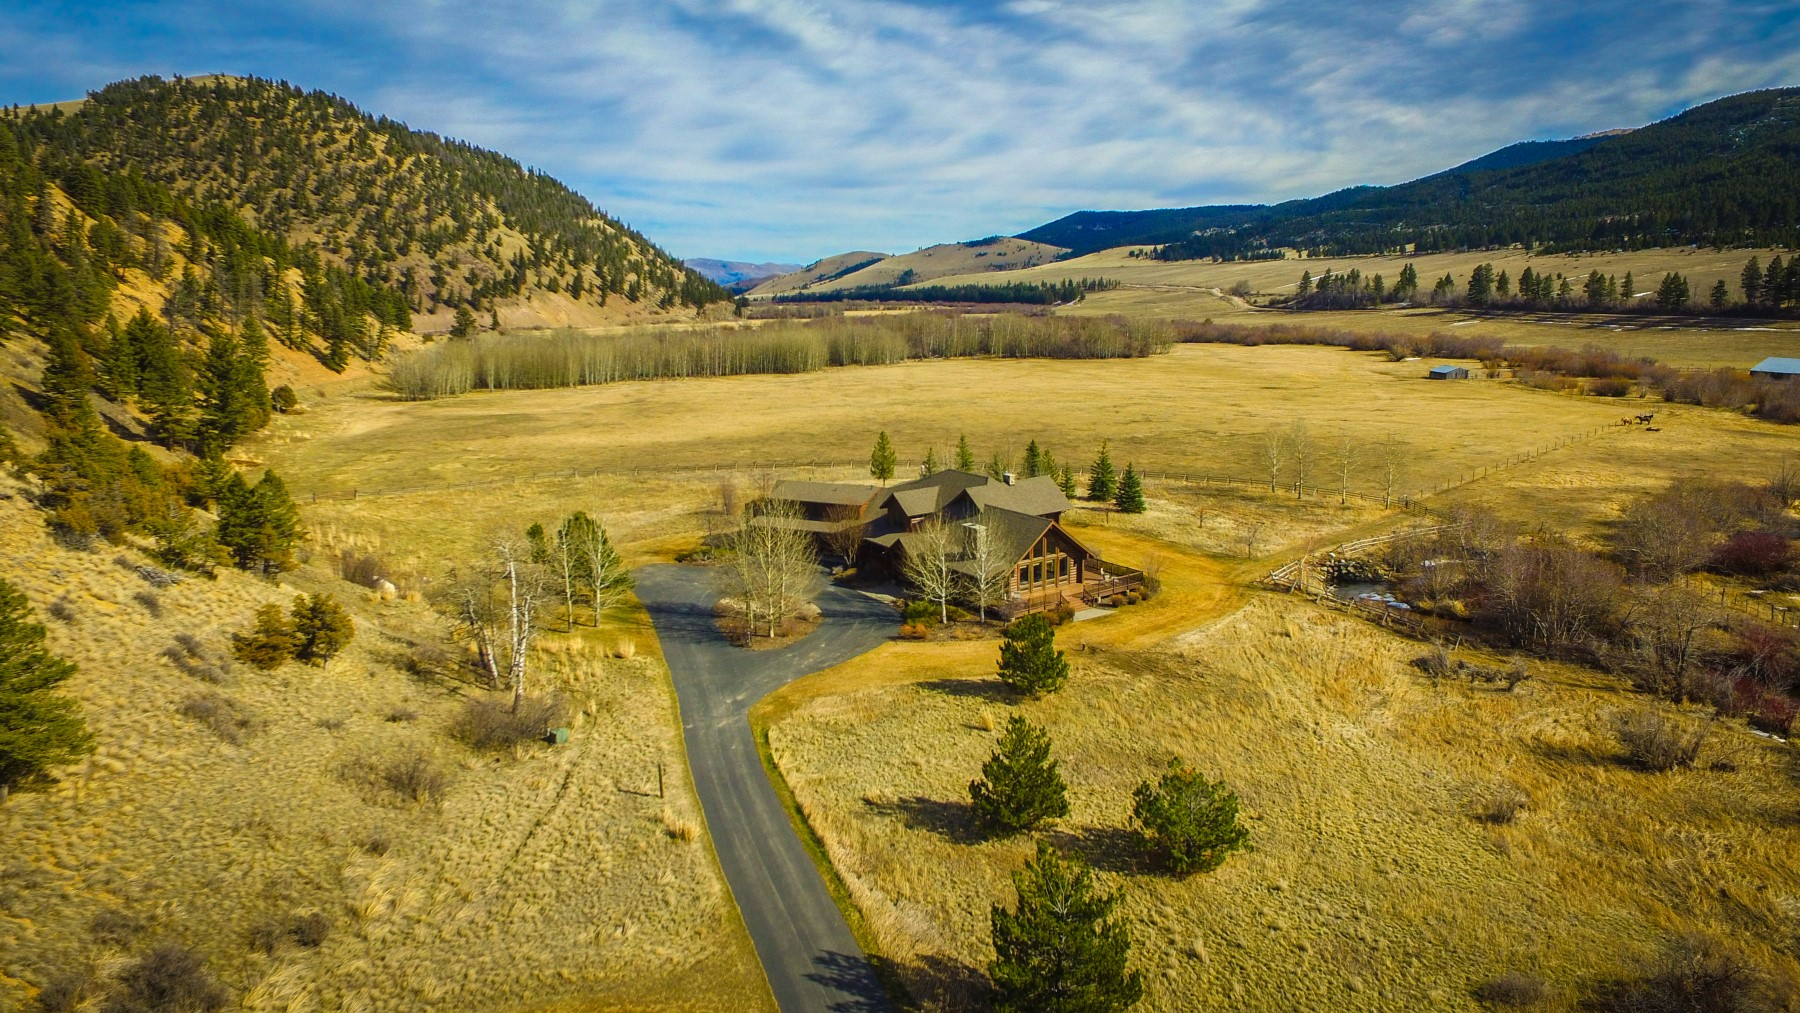 Single Family Home for Sale at 10000 Prickly Pear Road 10000 Little Prickly Pear Rd Canyon Creek, Montana 59633 United States